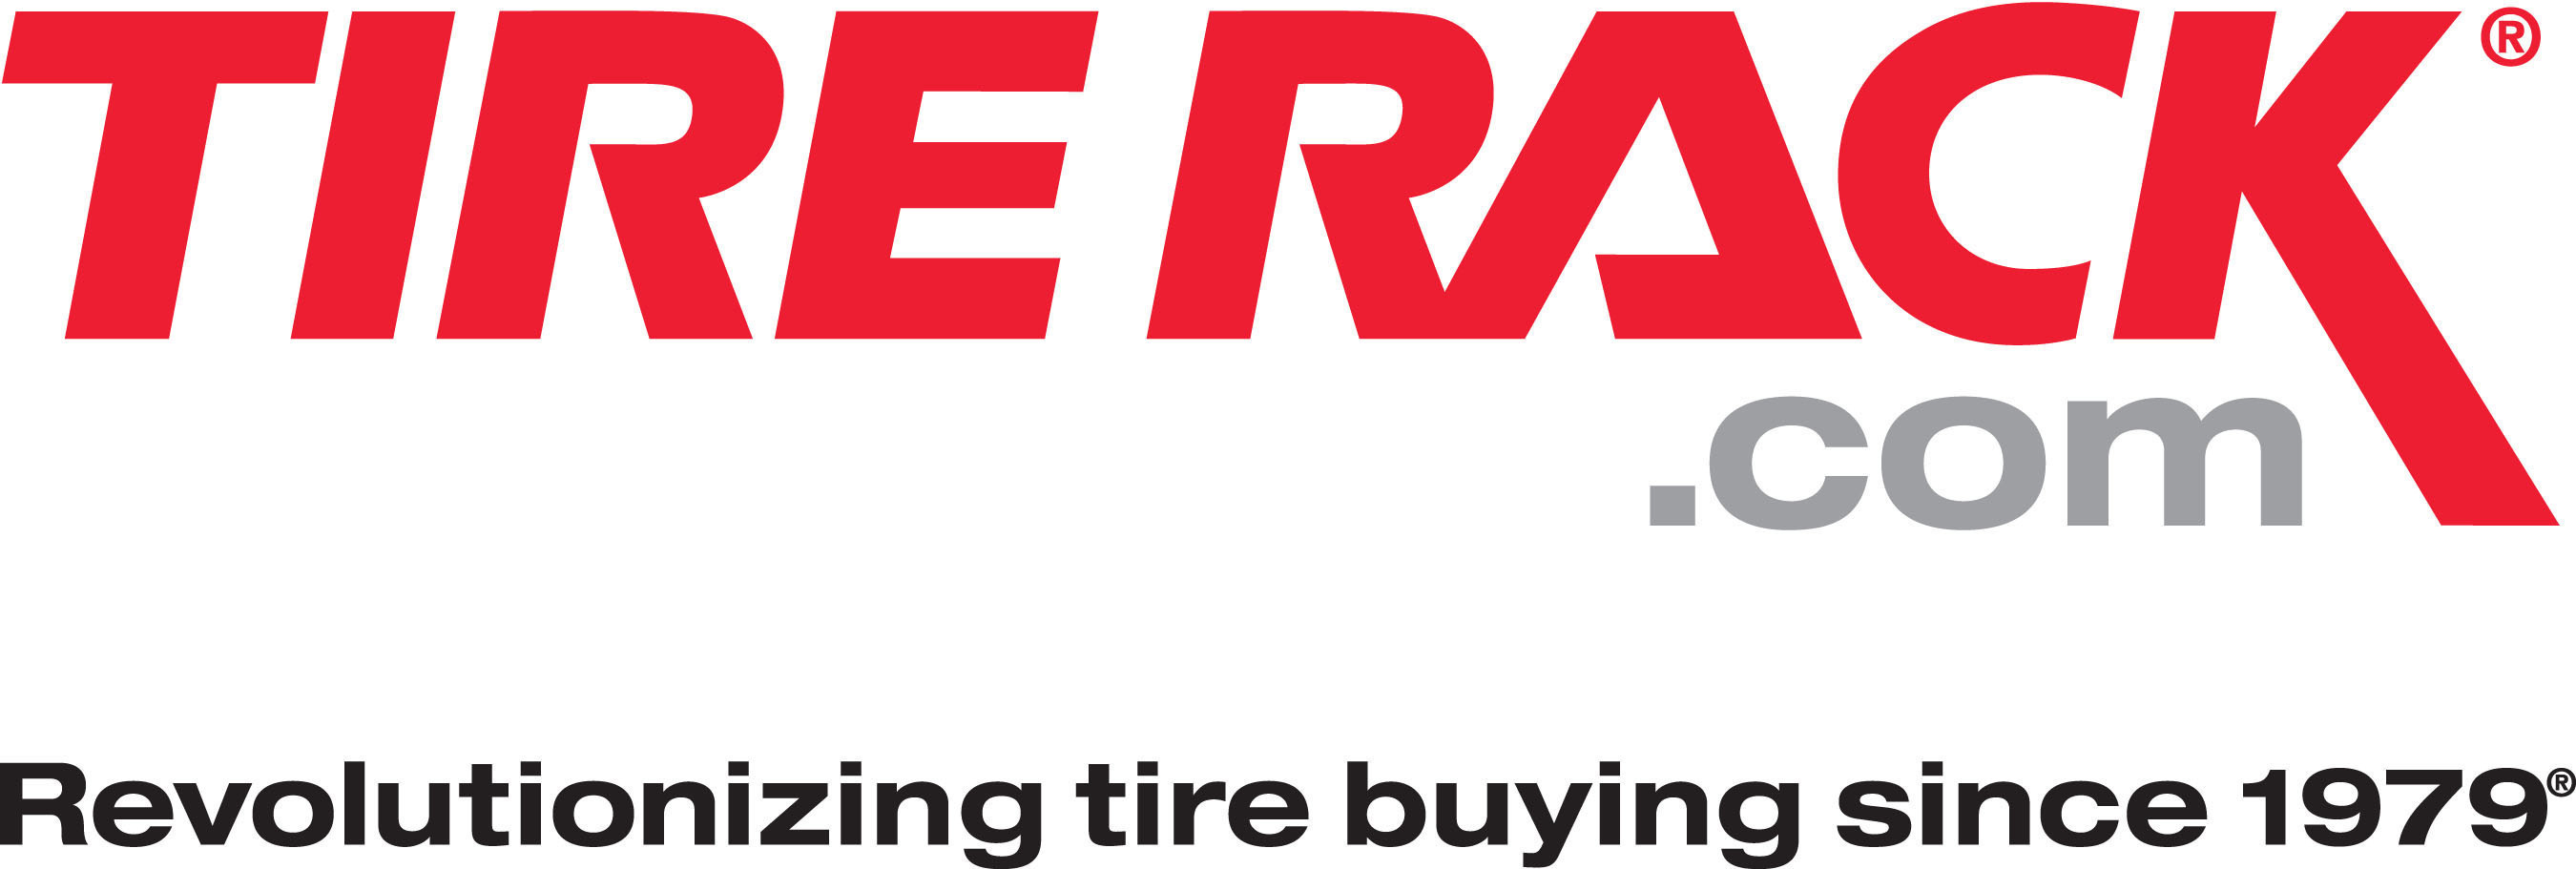 tirerack com continues to expand national reach with new distribution center in denver